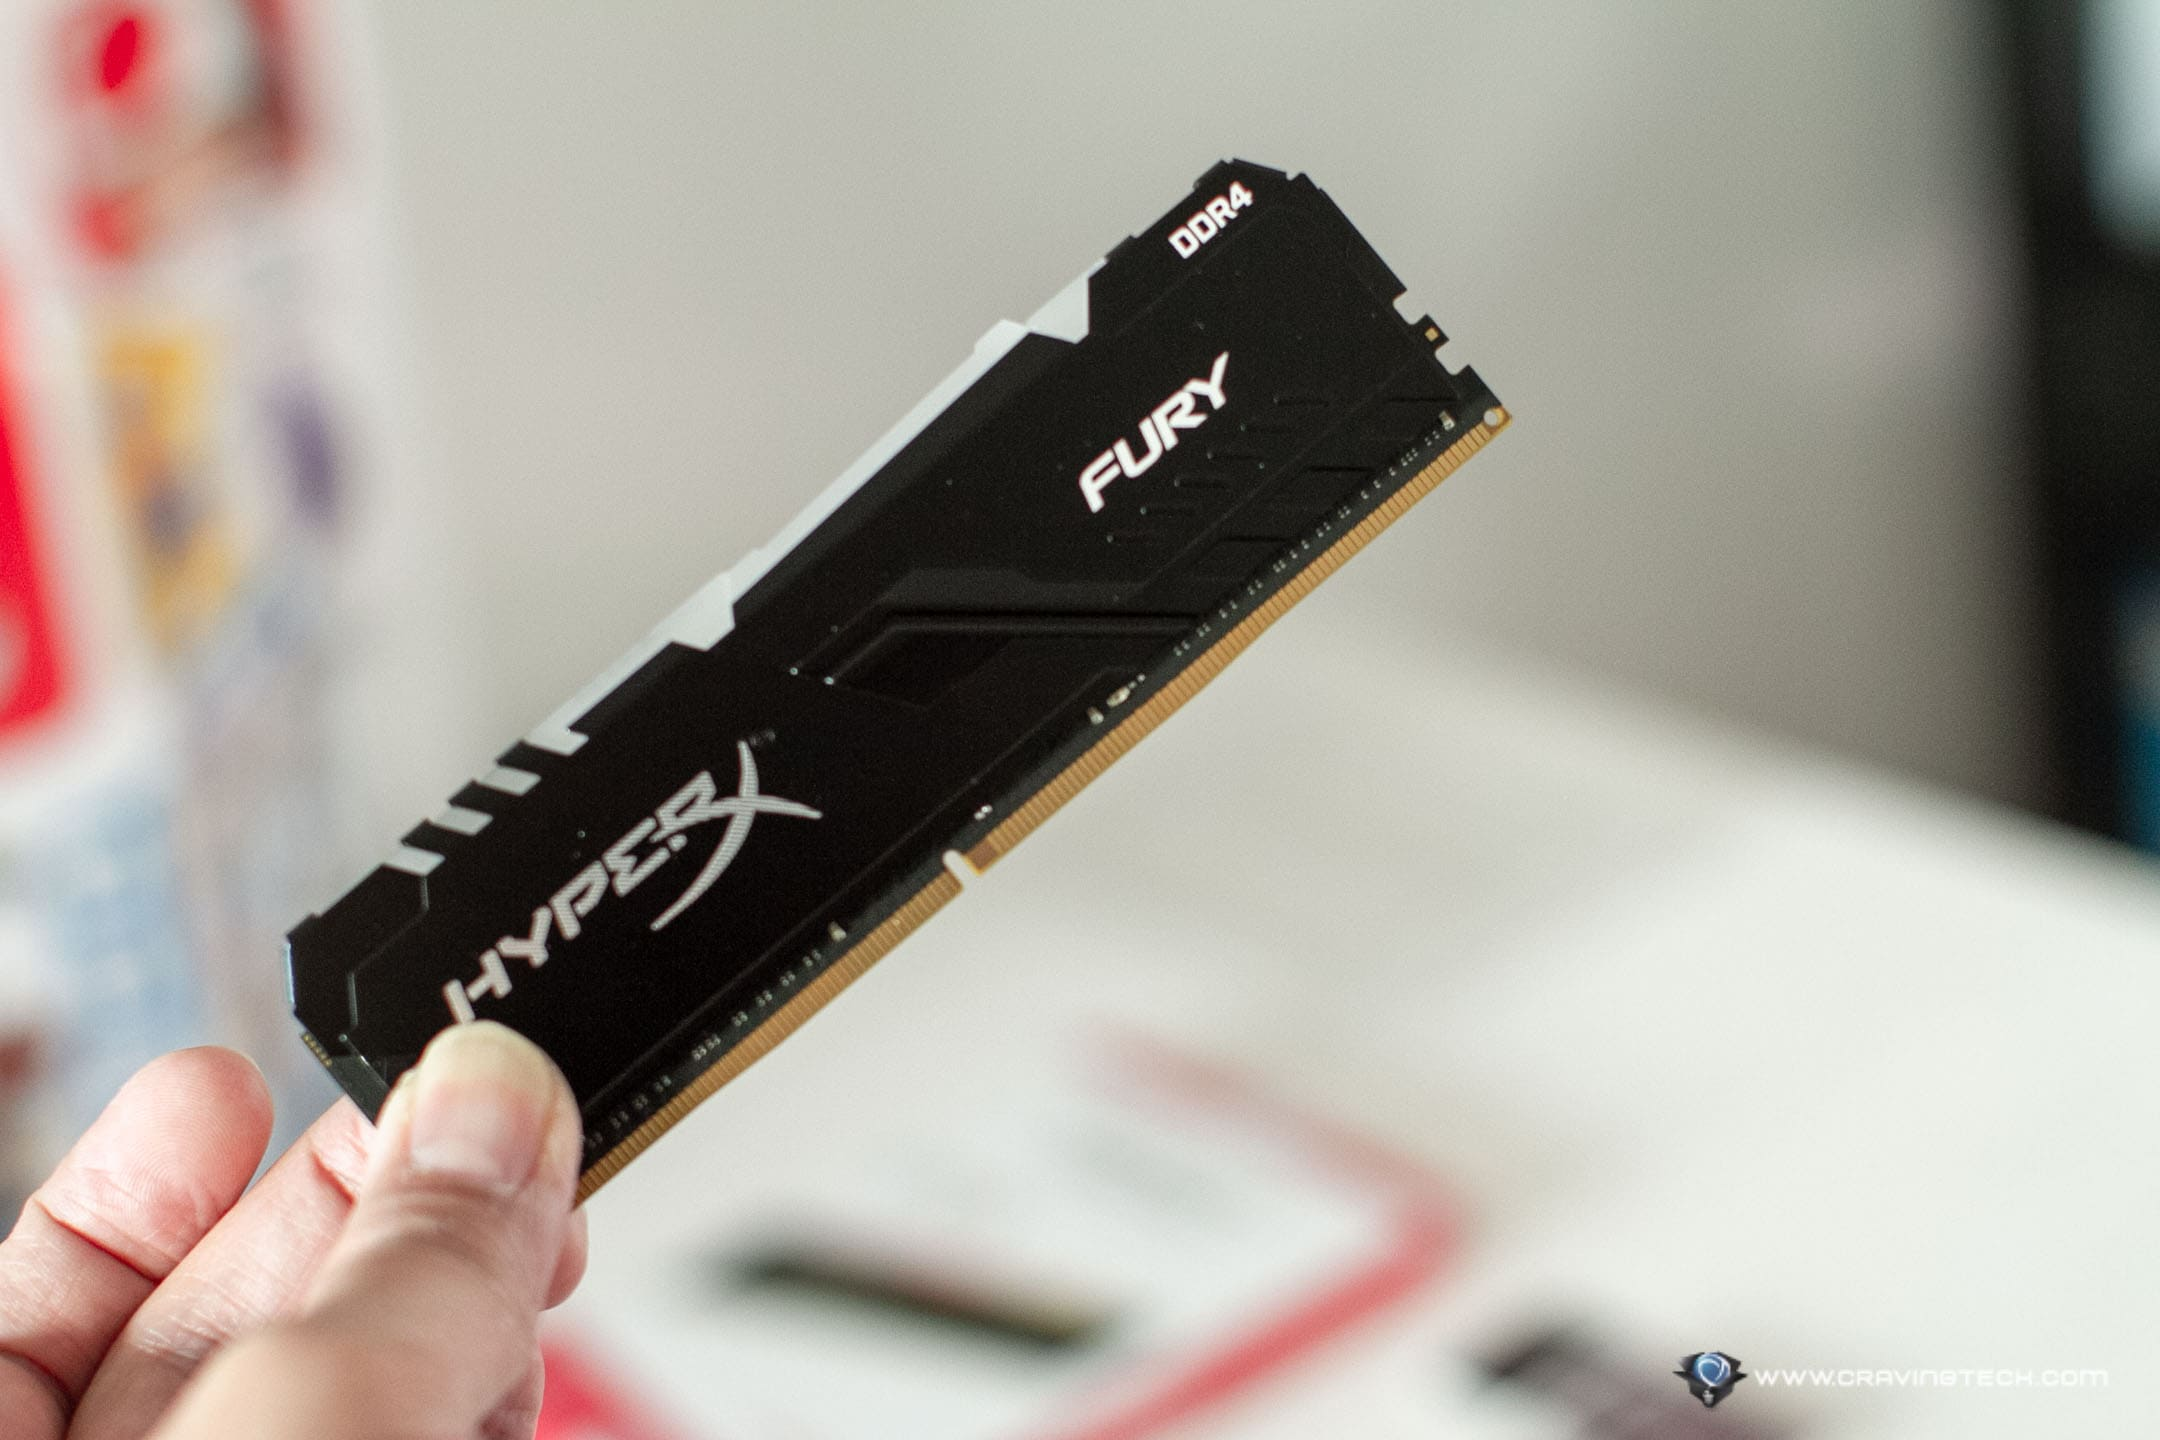 Kingston HyperX FURY DDR4 RGB at 3,600MHz optimised for your AMD Ryzen build